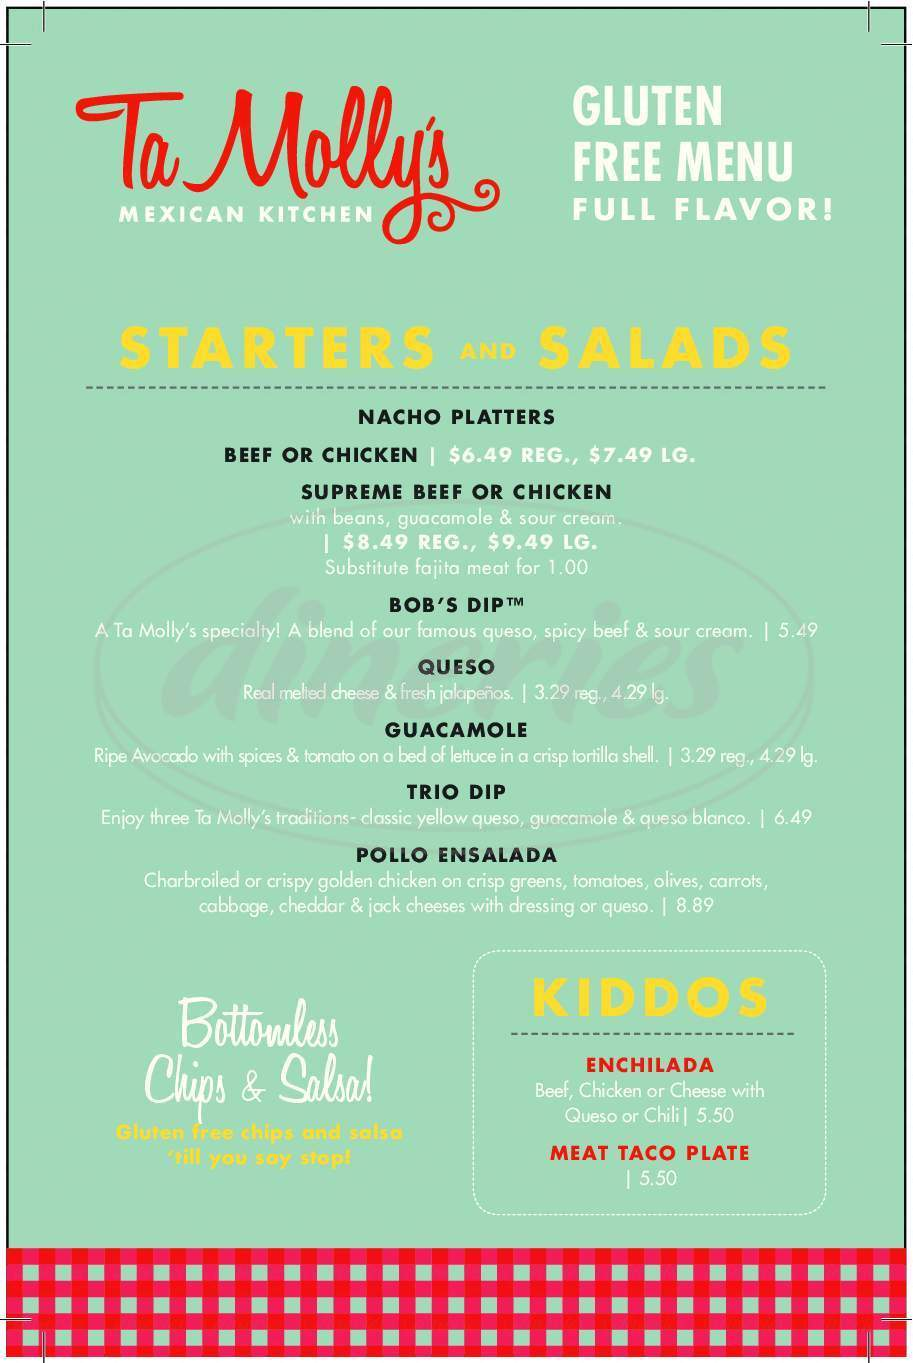 menu for Tamolly's